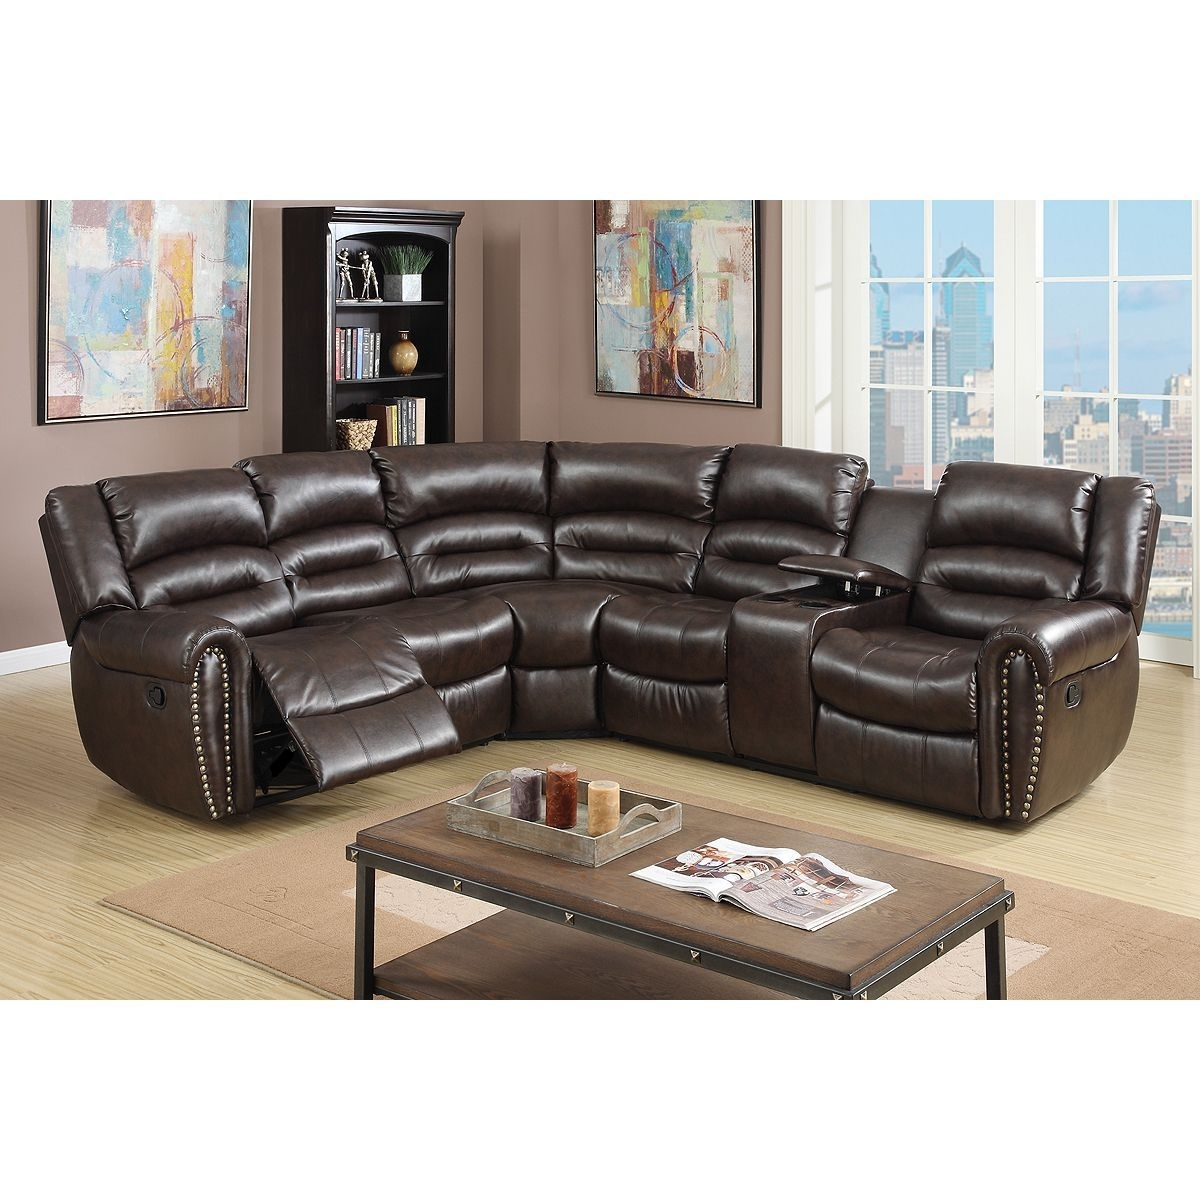 American Eagle Furniture Ek Lb309 Dc Dark Chocolate Sofa C Within Tenny Dark Grey 2 Piece Left Facing Chaise Sectionals With 2 Headrest (View 25 of 25)